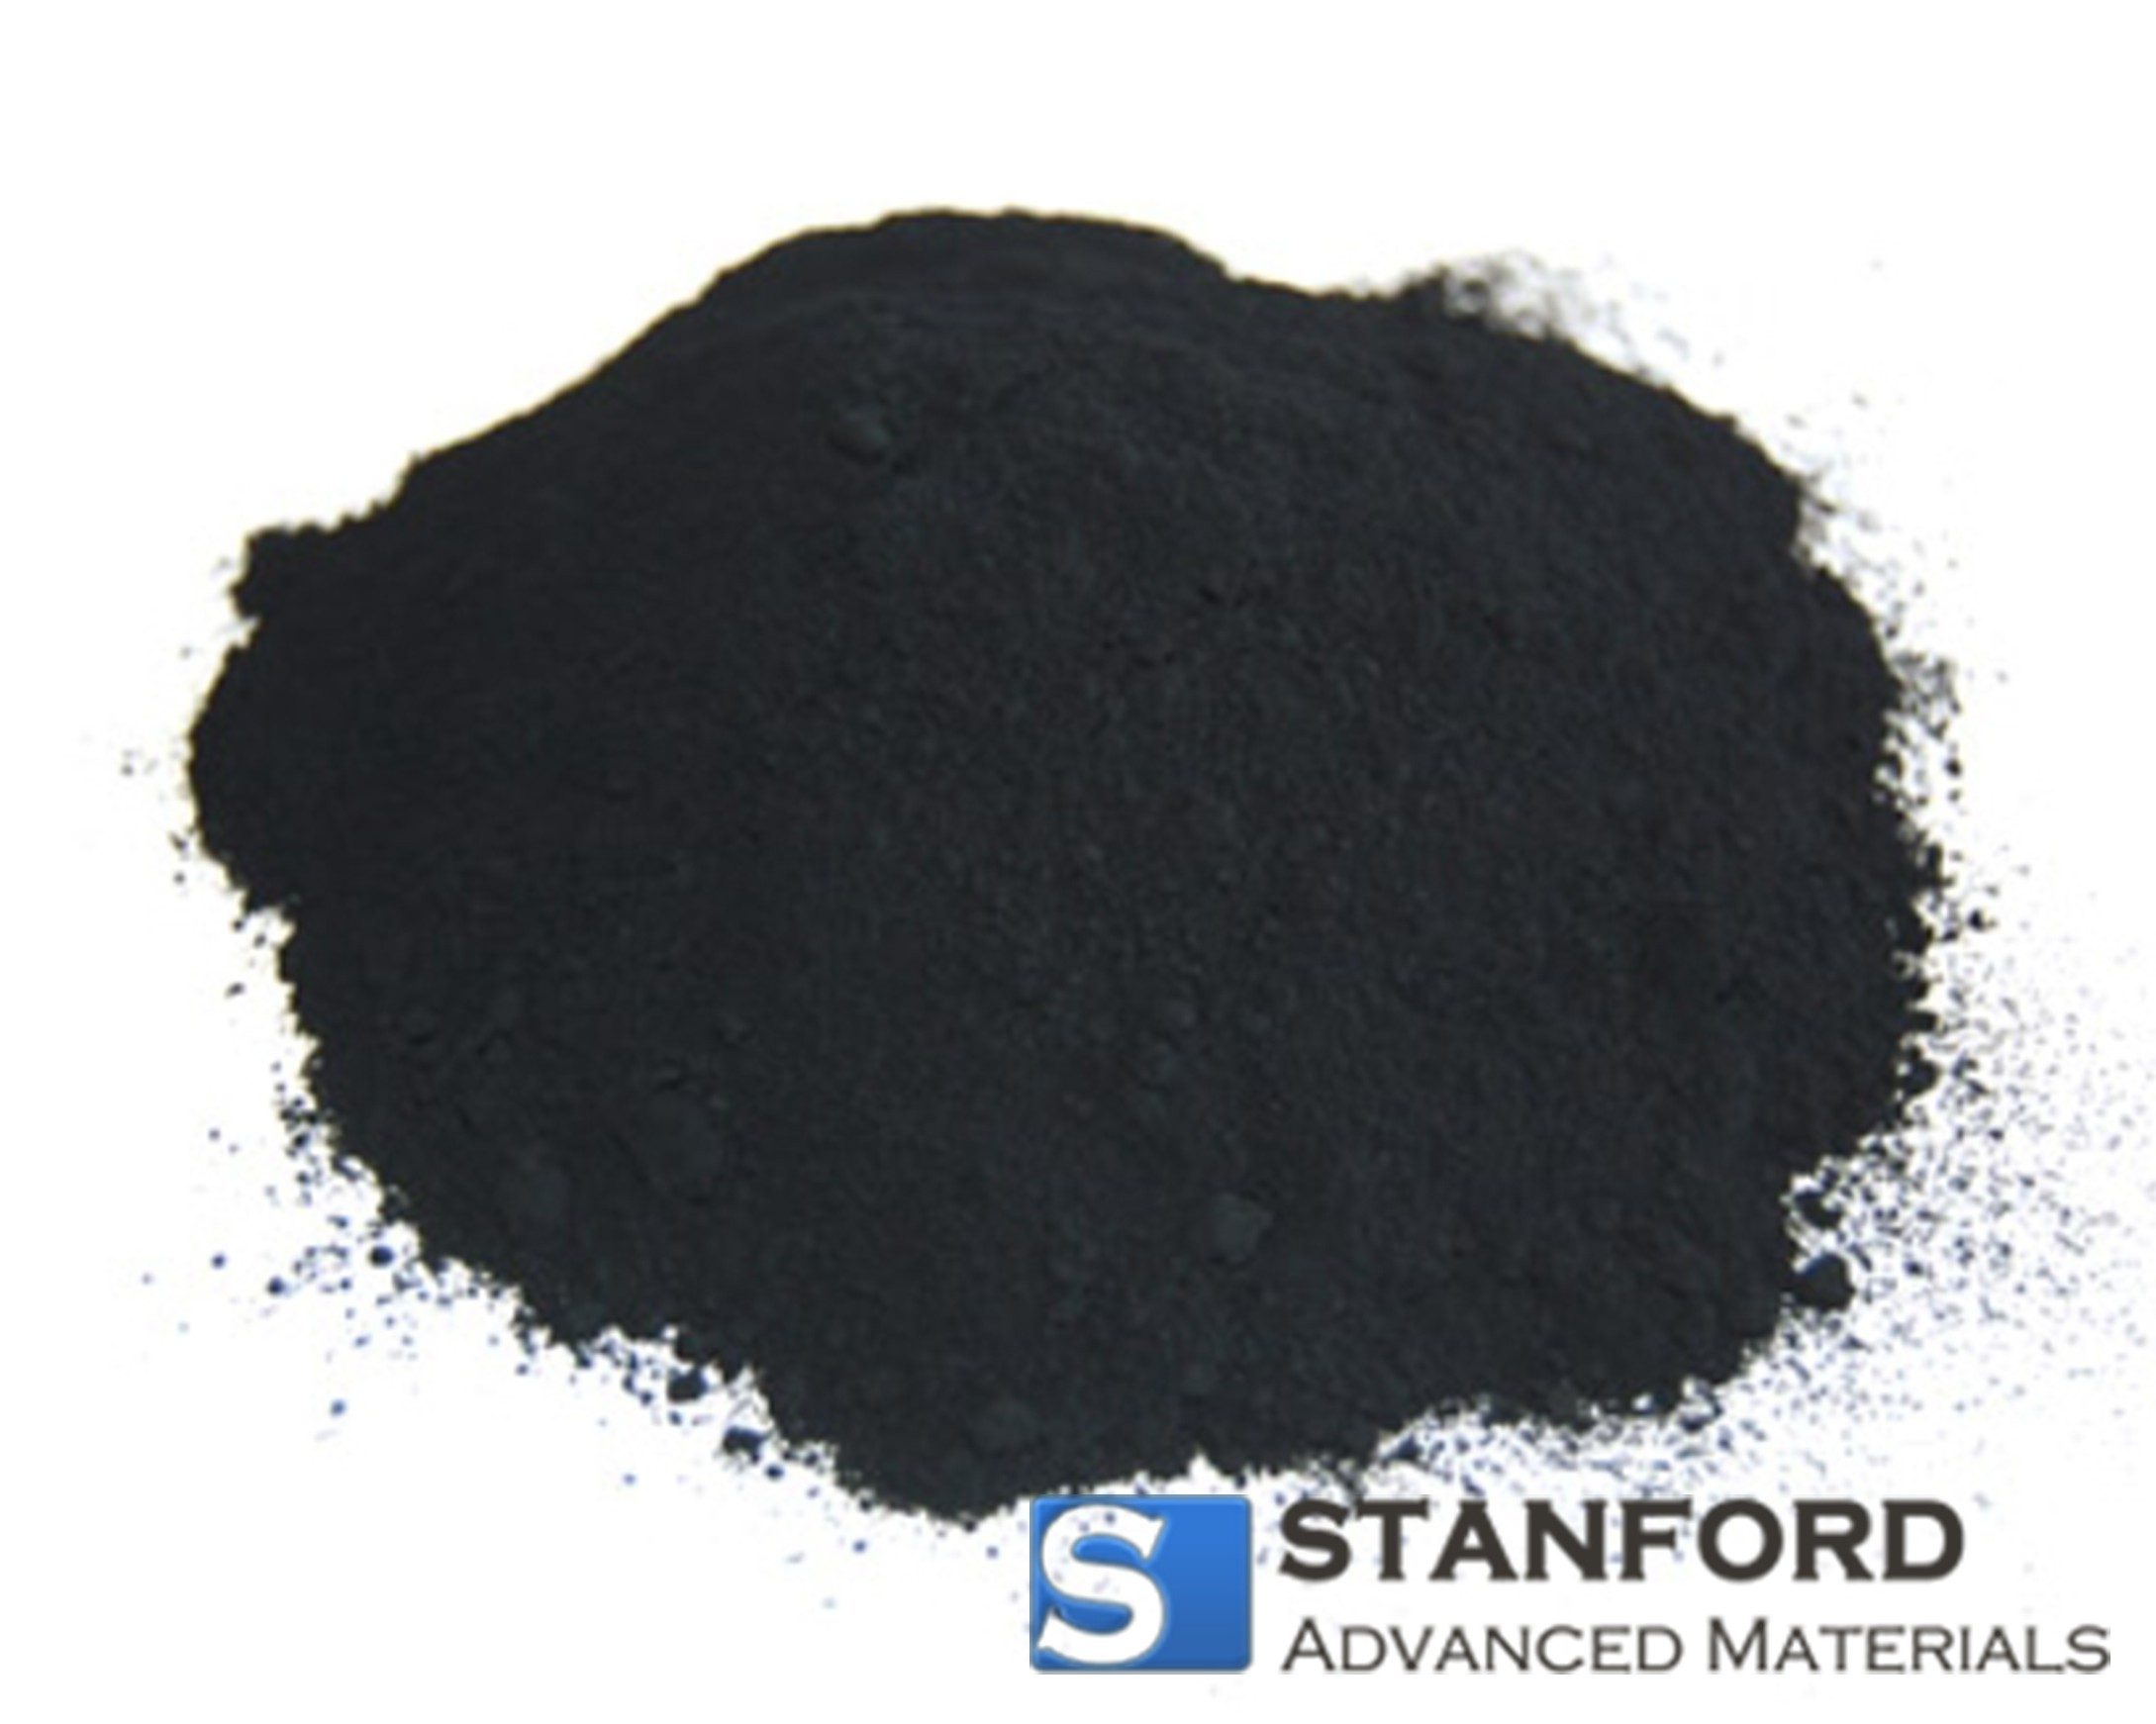 TH1887 Lanthanum Strontium Cobaltite Cathode Powder (LSC Cathode Powder)